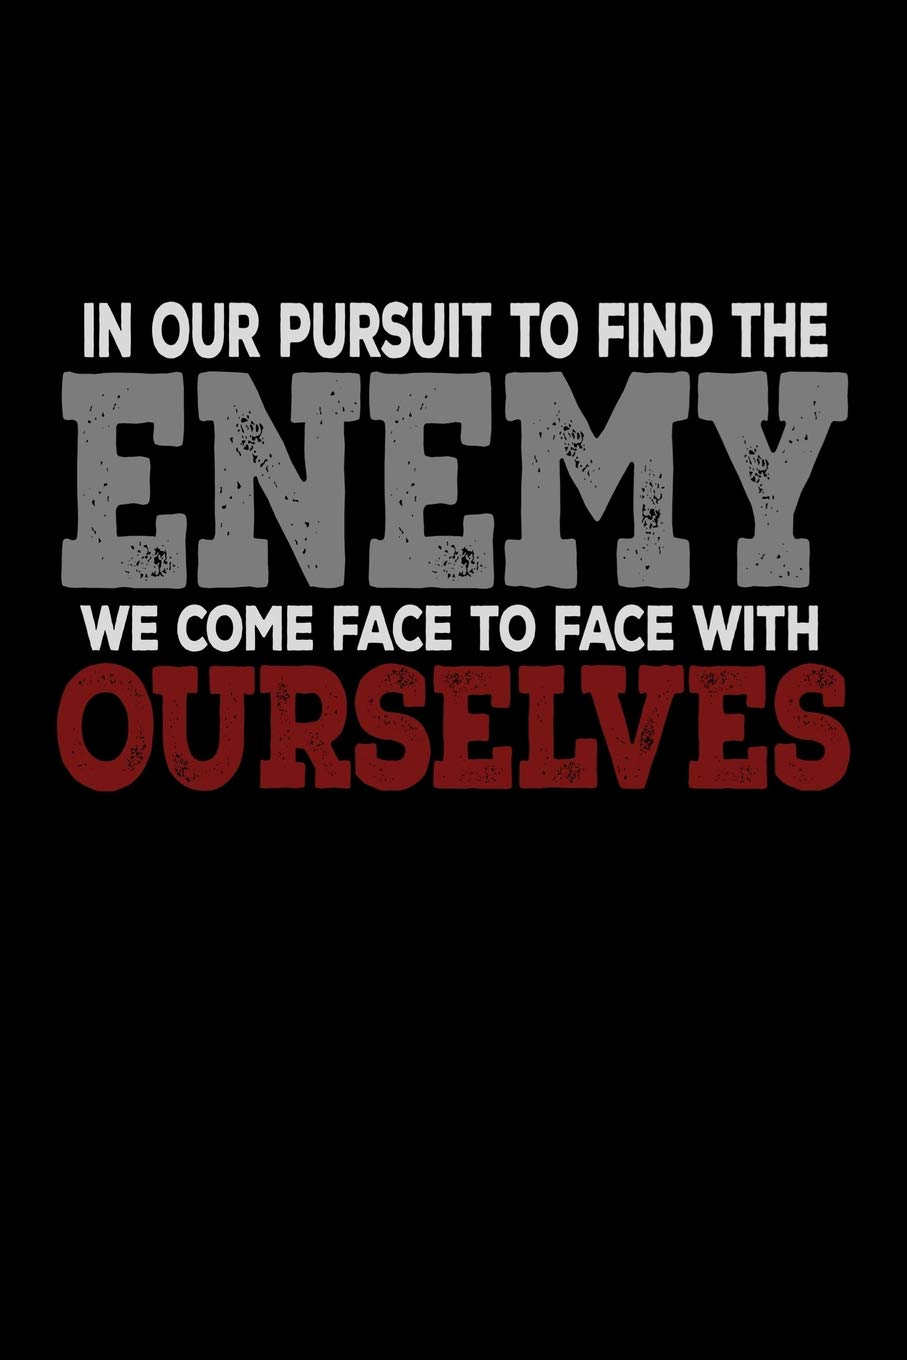 In Our Pursuit To Find The Enemy We Come Face To Face With